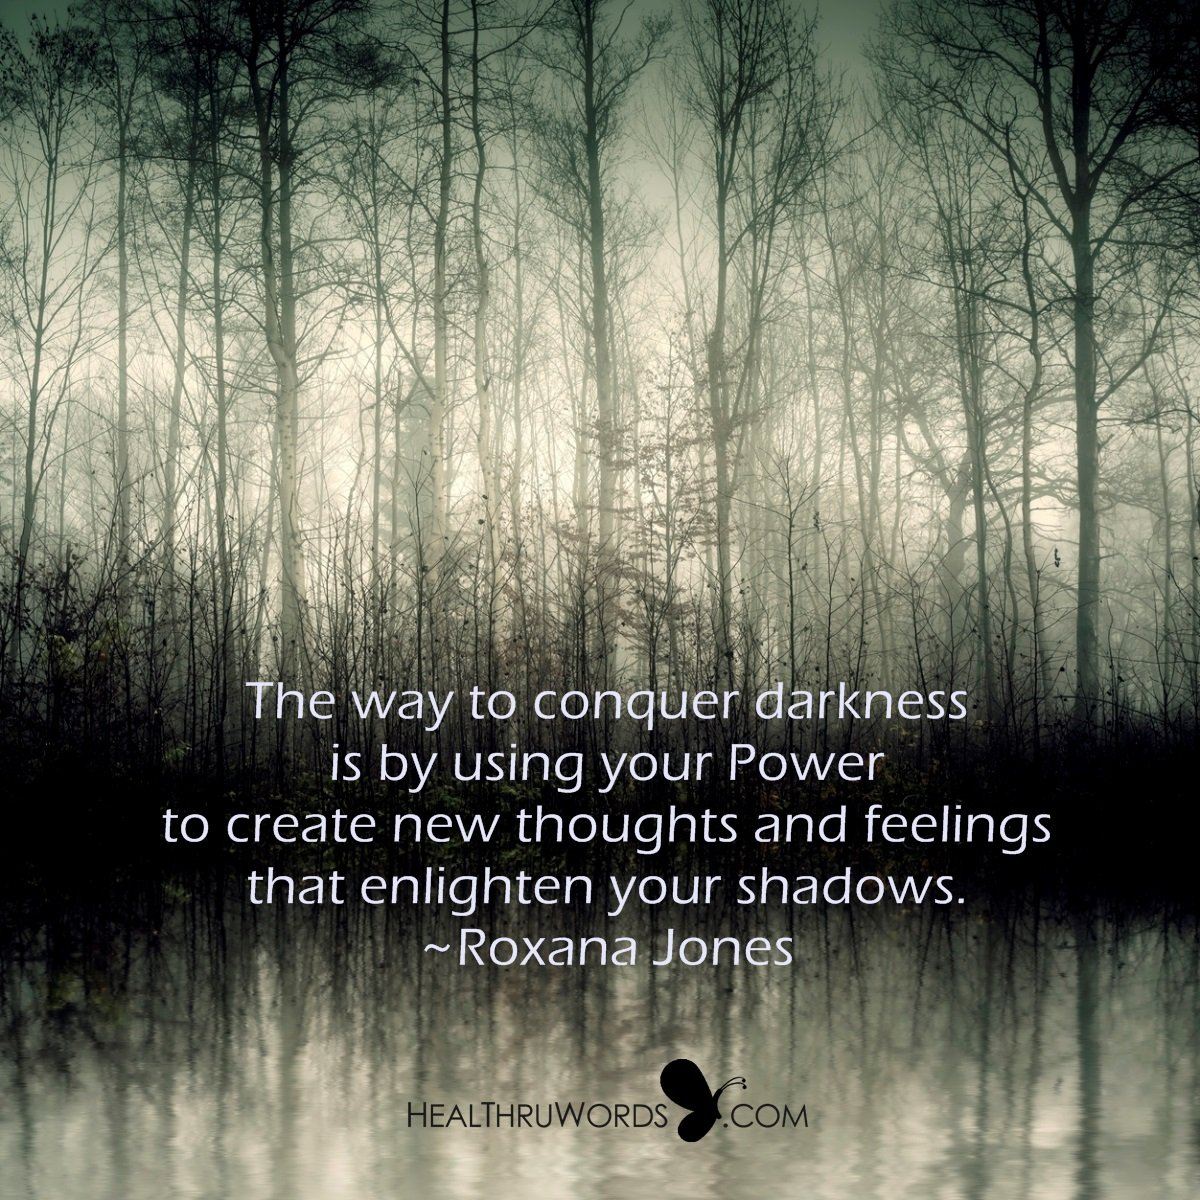 Inspirational Image: Enlighten your Shadows